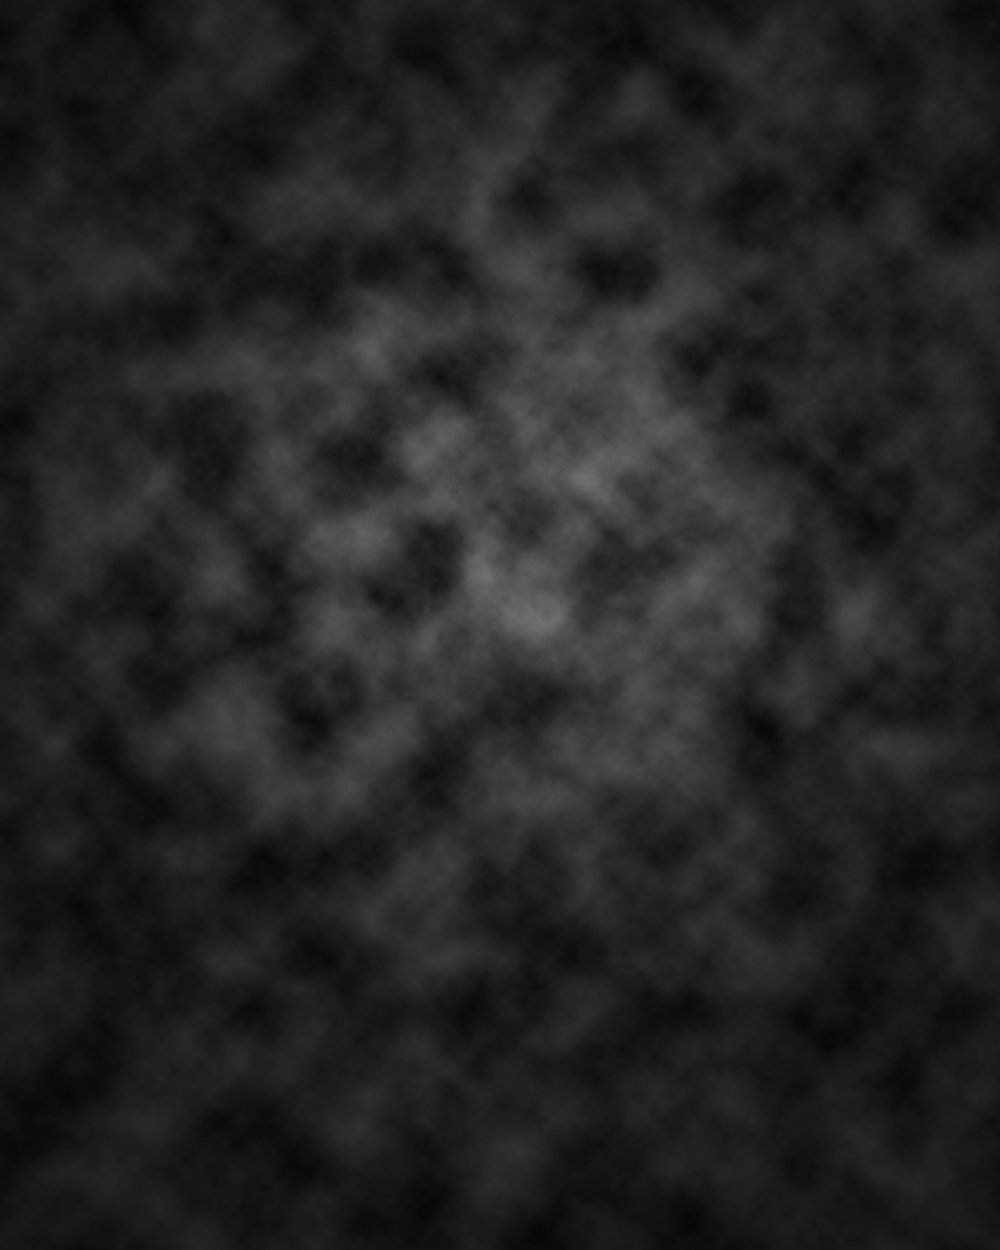 Background Option #3 - Black